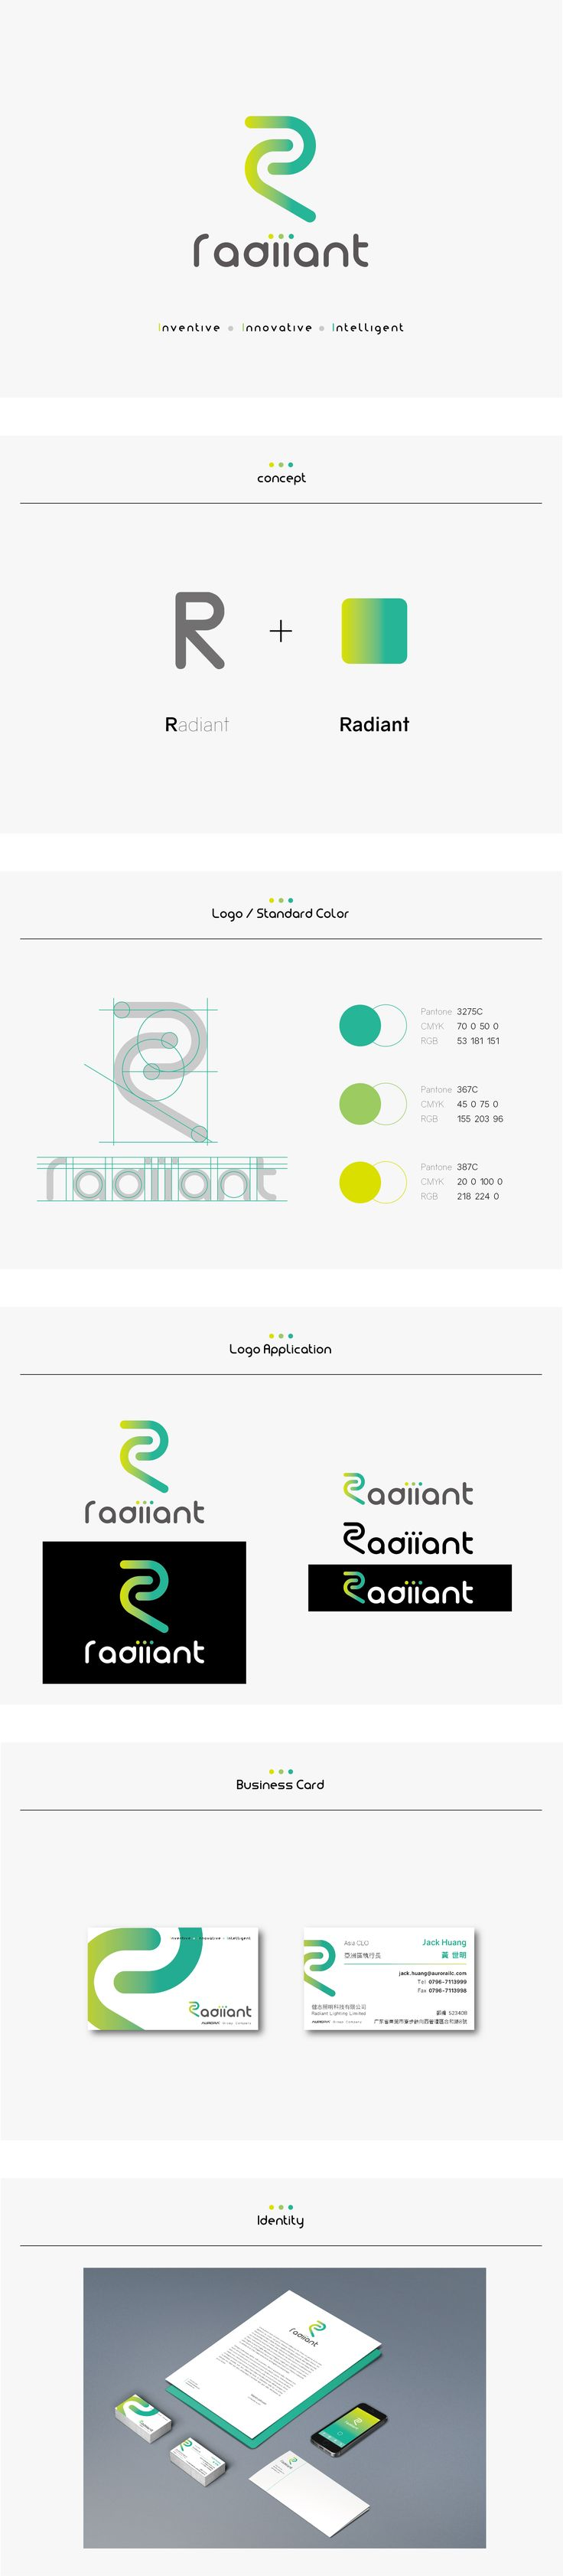 Radiiant - Logo / Identity Design -Proposal 1